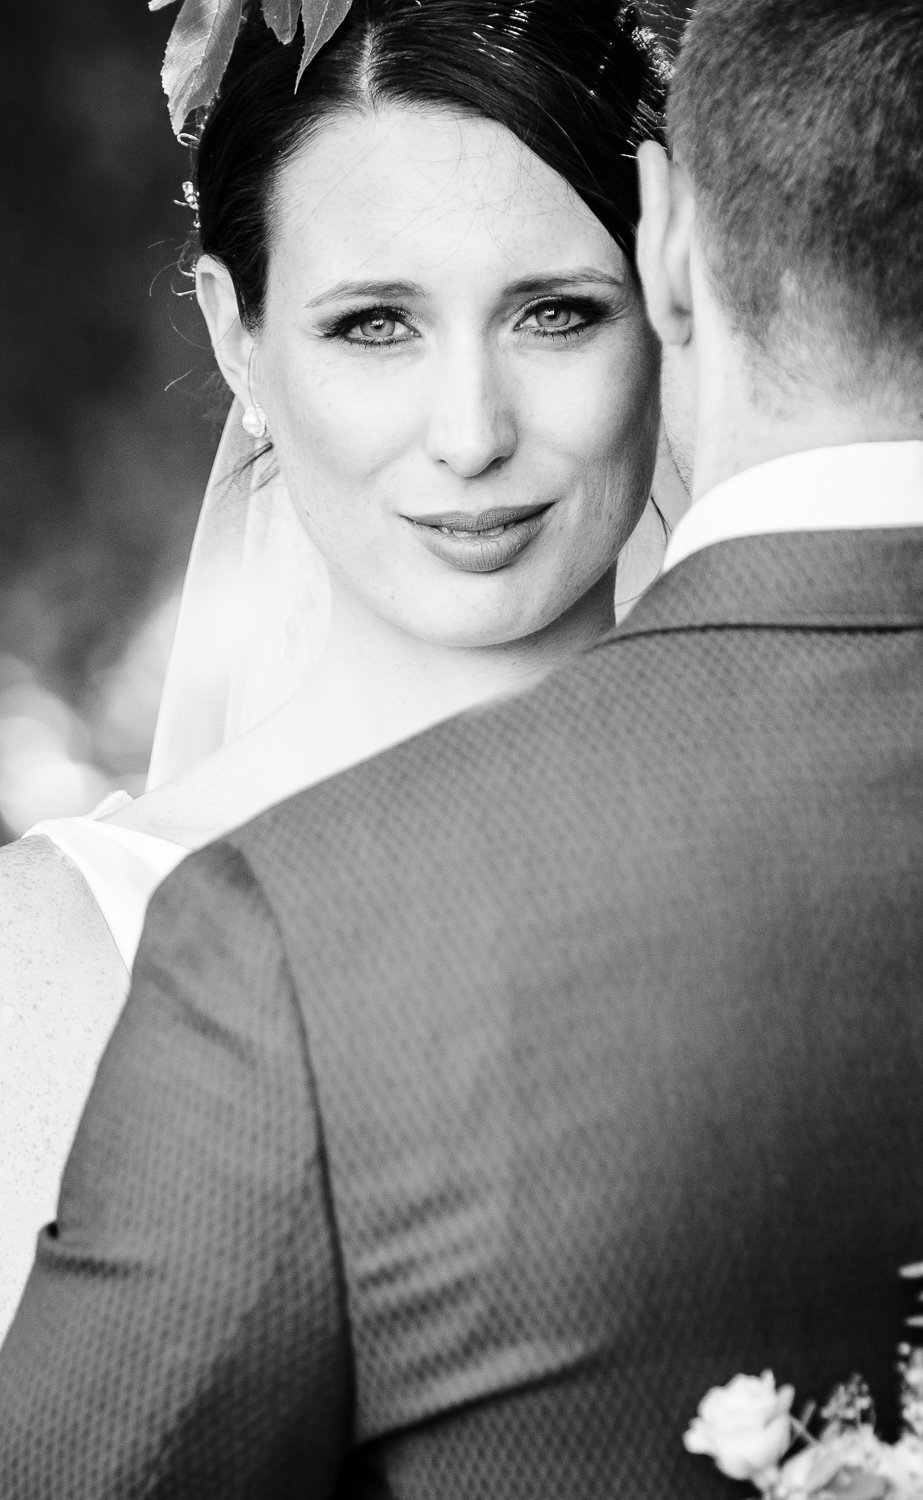 Kimberly_Duchateau_photography_2019_wedding-120